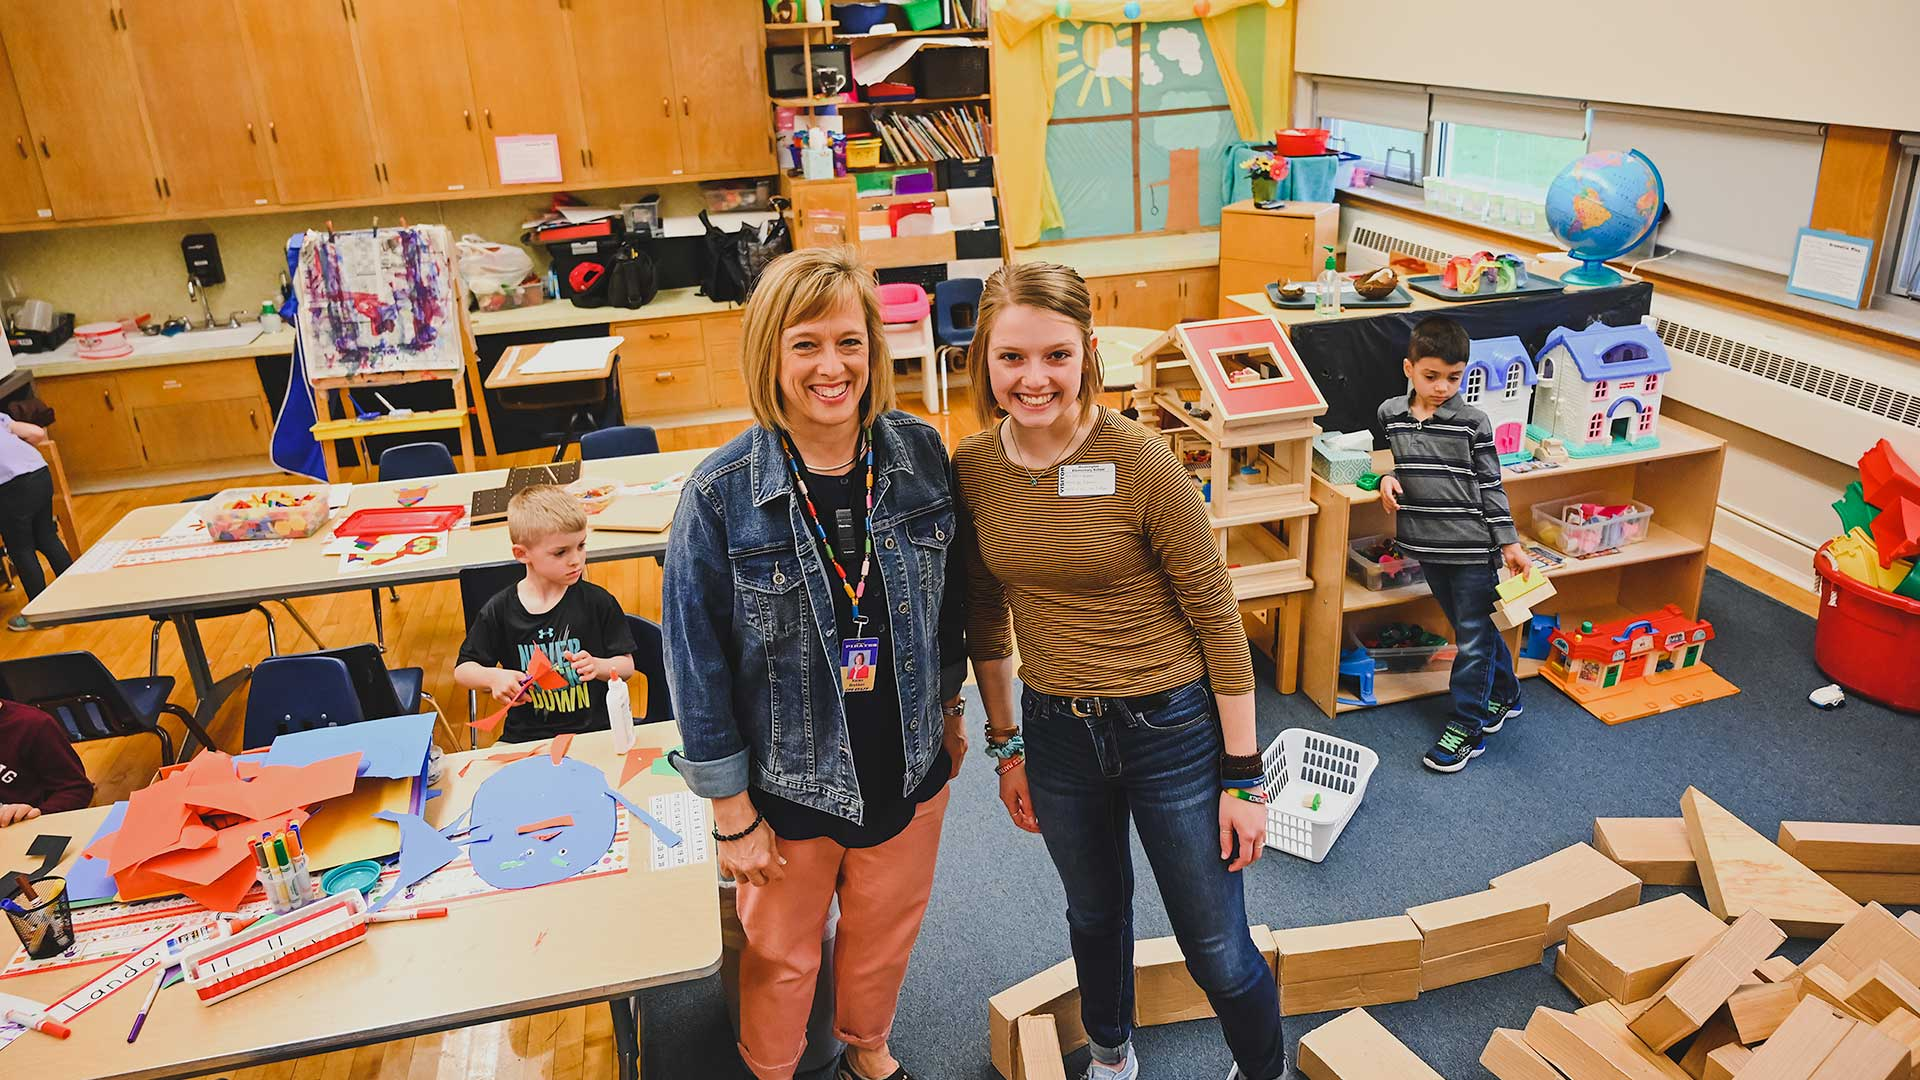 Karen and Karlie Brekken in an elementary classroom